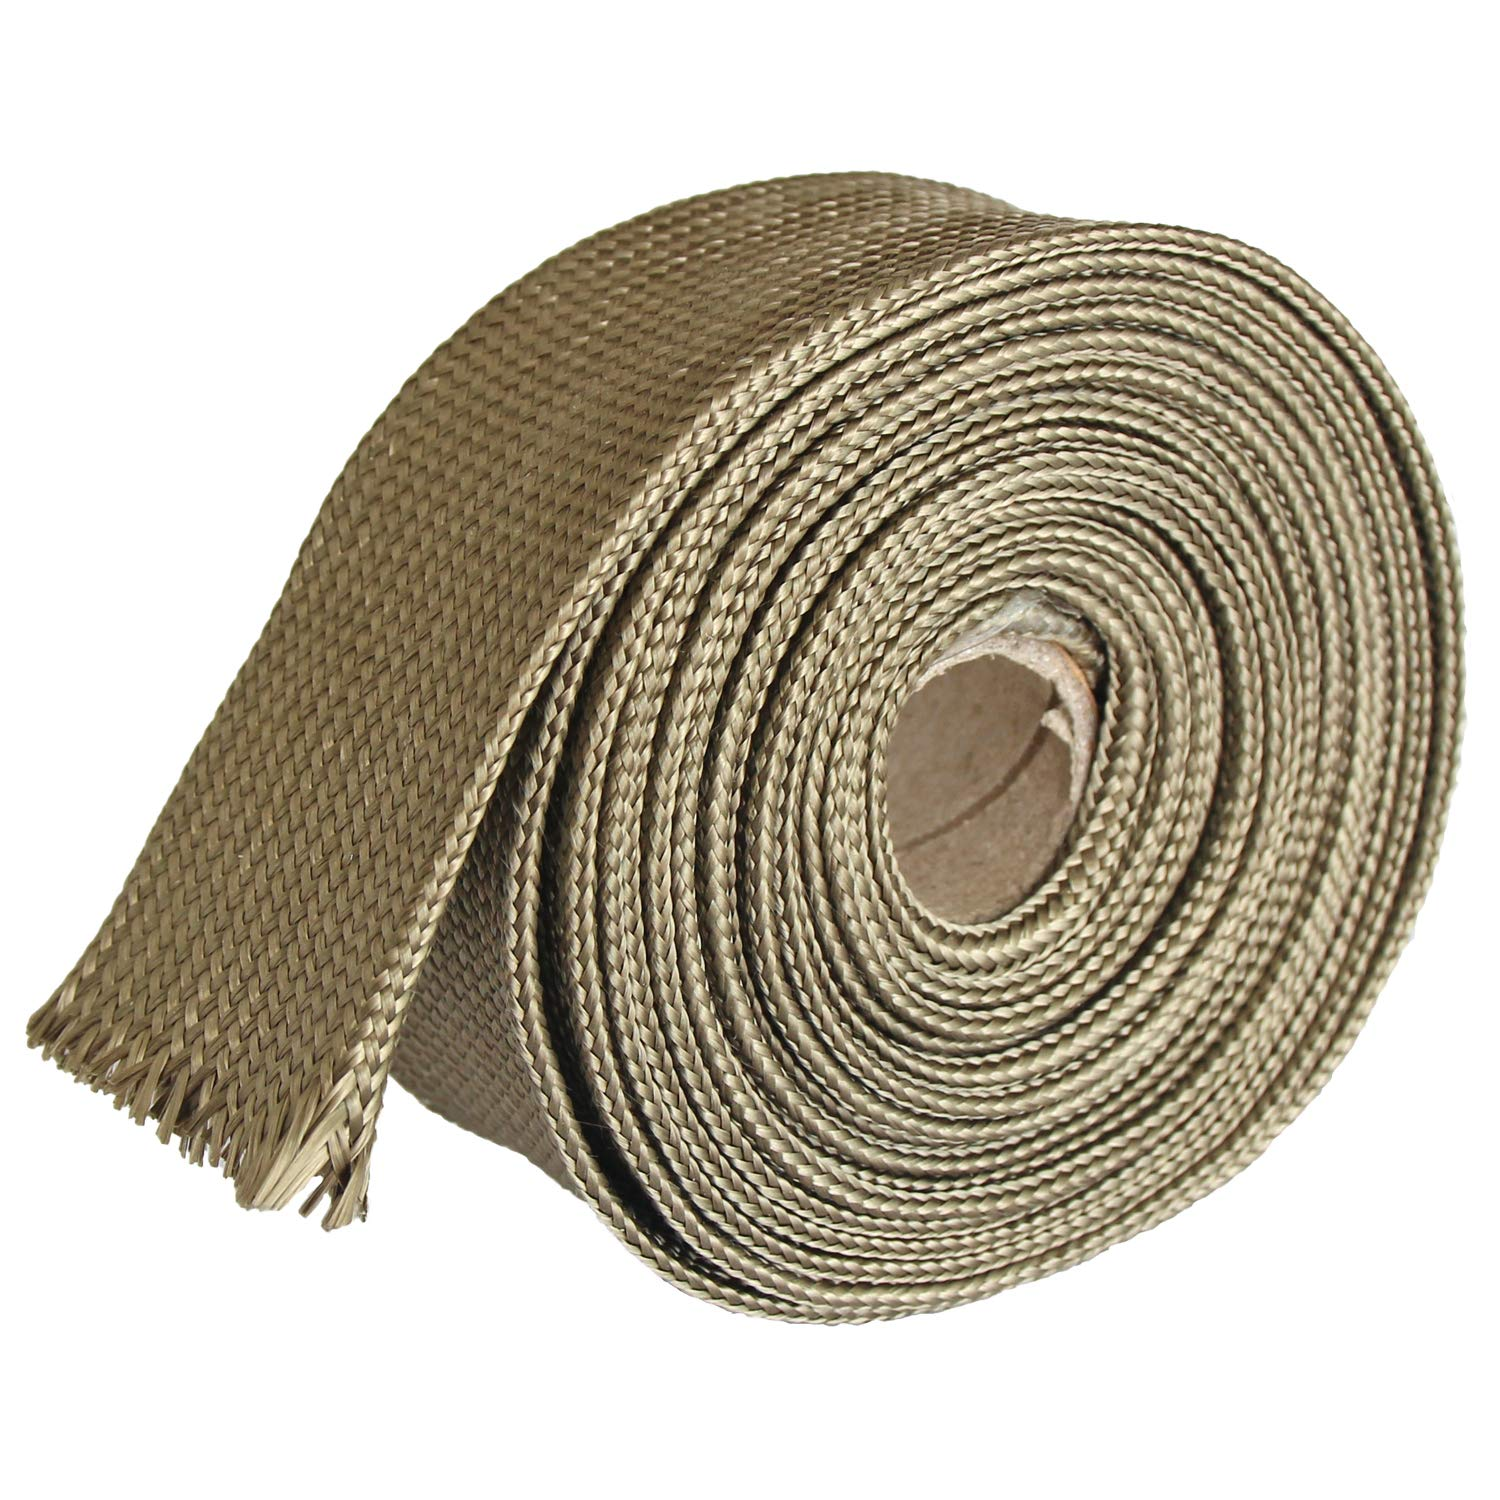 1 ID X 10 Adjustable Titanium Exhaust Heat Shield Spark Plug Wire Heat Shield Roll For Car/&Auto Wire Loom Brake Line Cable line sleeve protection Titanium Fiberglass Heat Wrap Wire Shield Sleeve